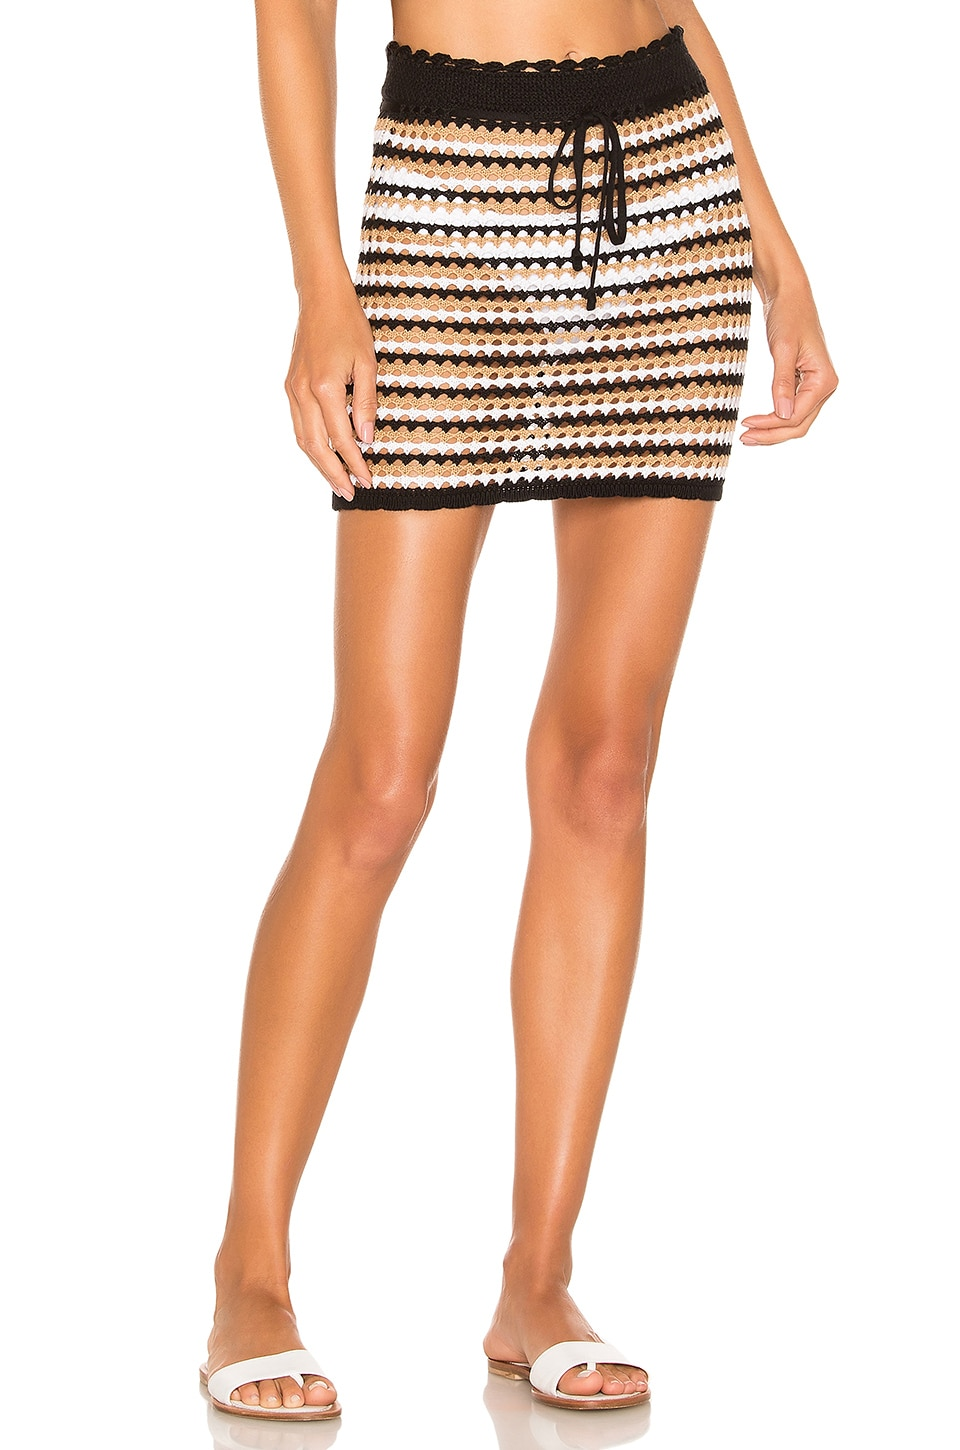 House of Harlow 1960 x REVOLVE Alhambra Skirt in Dunes Stripe